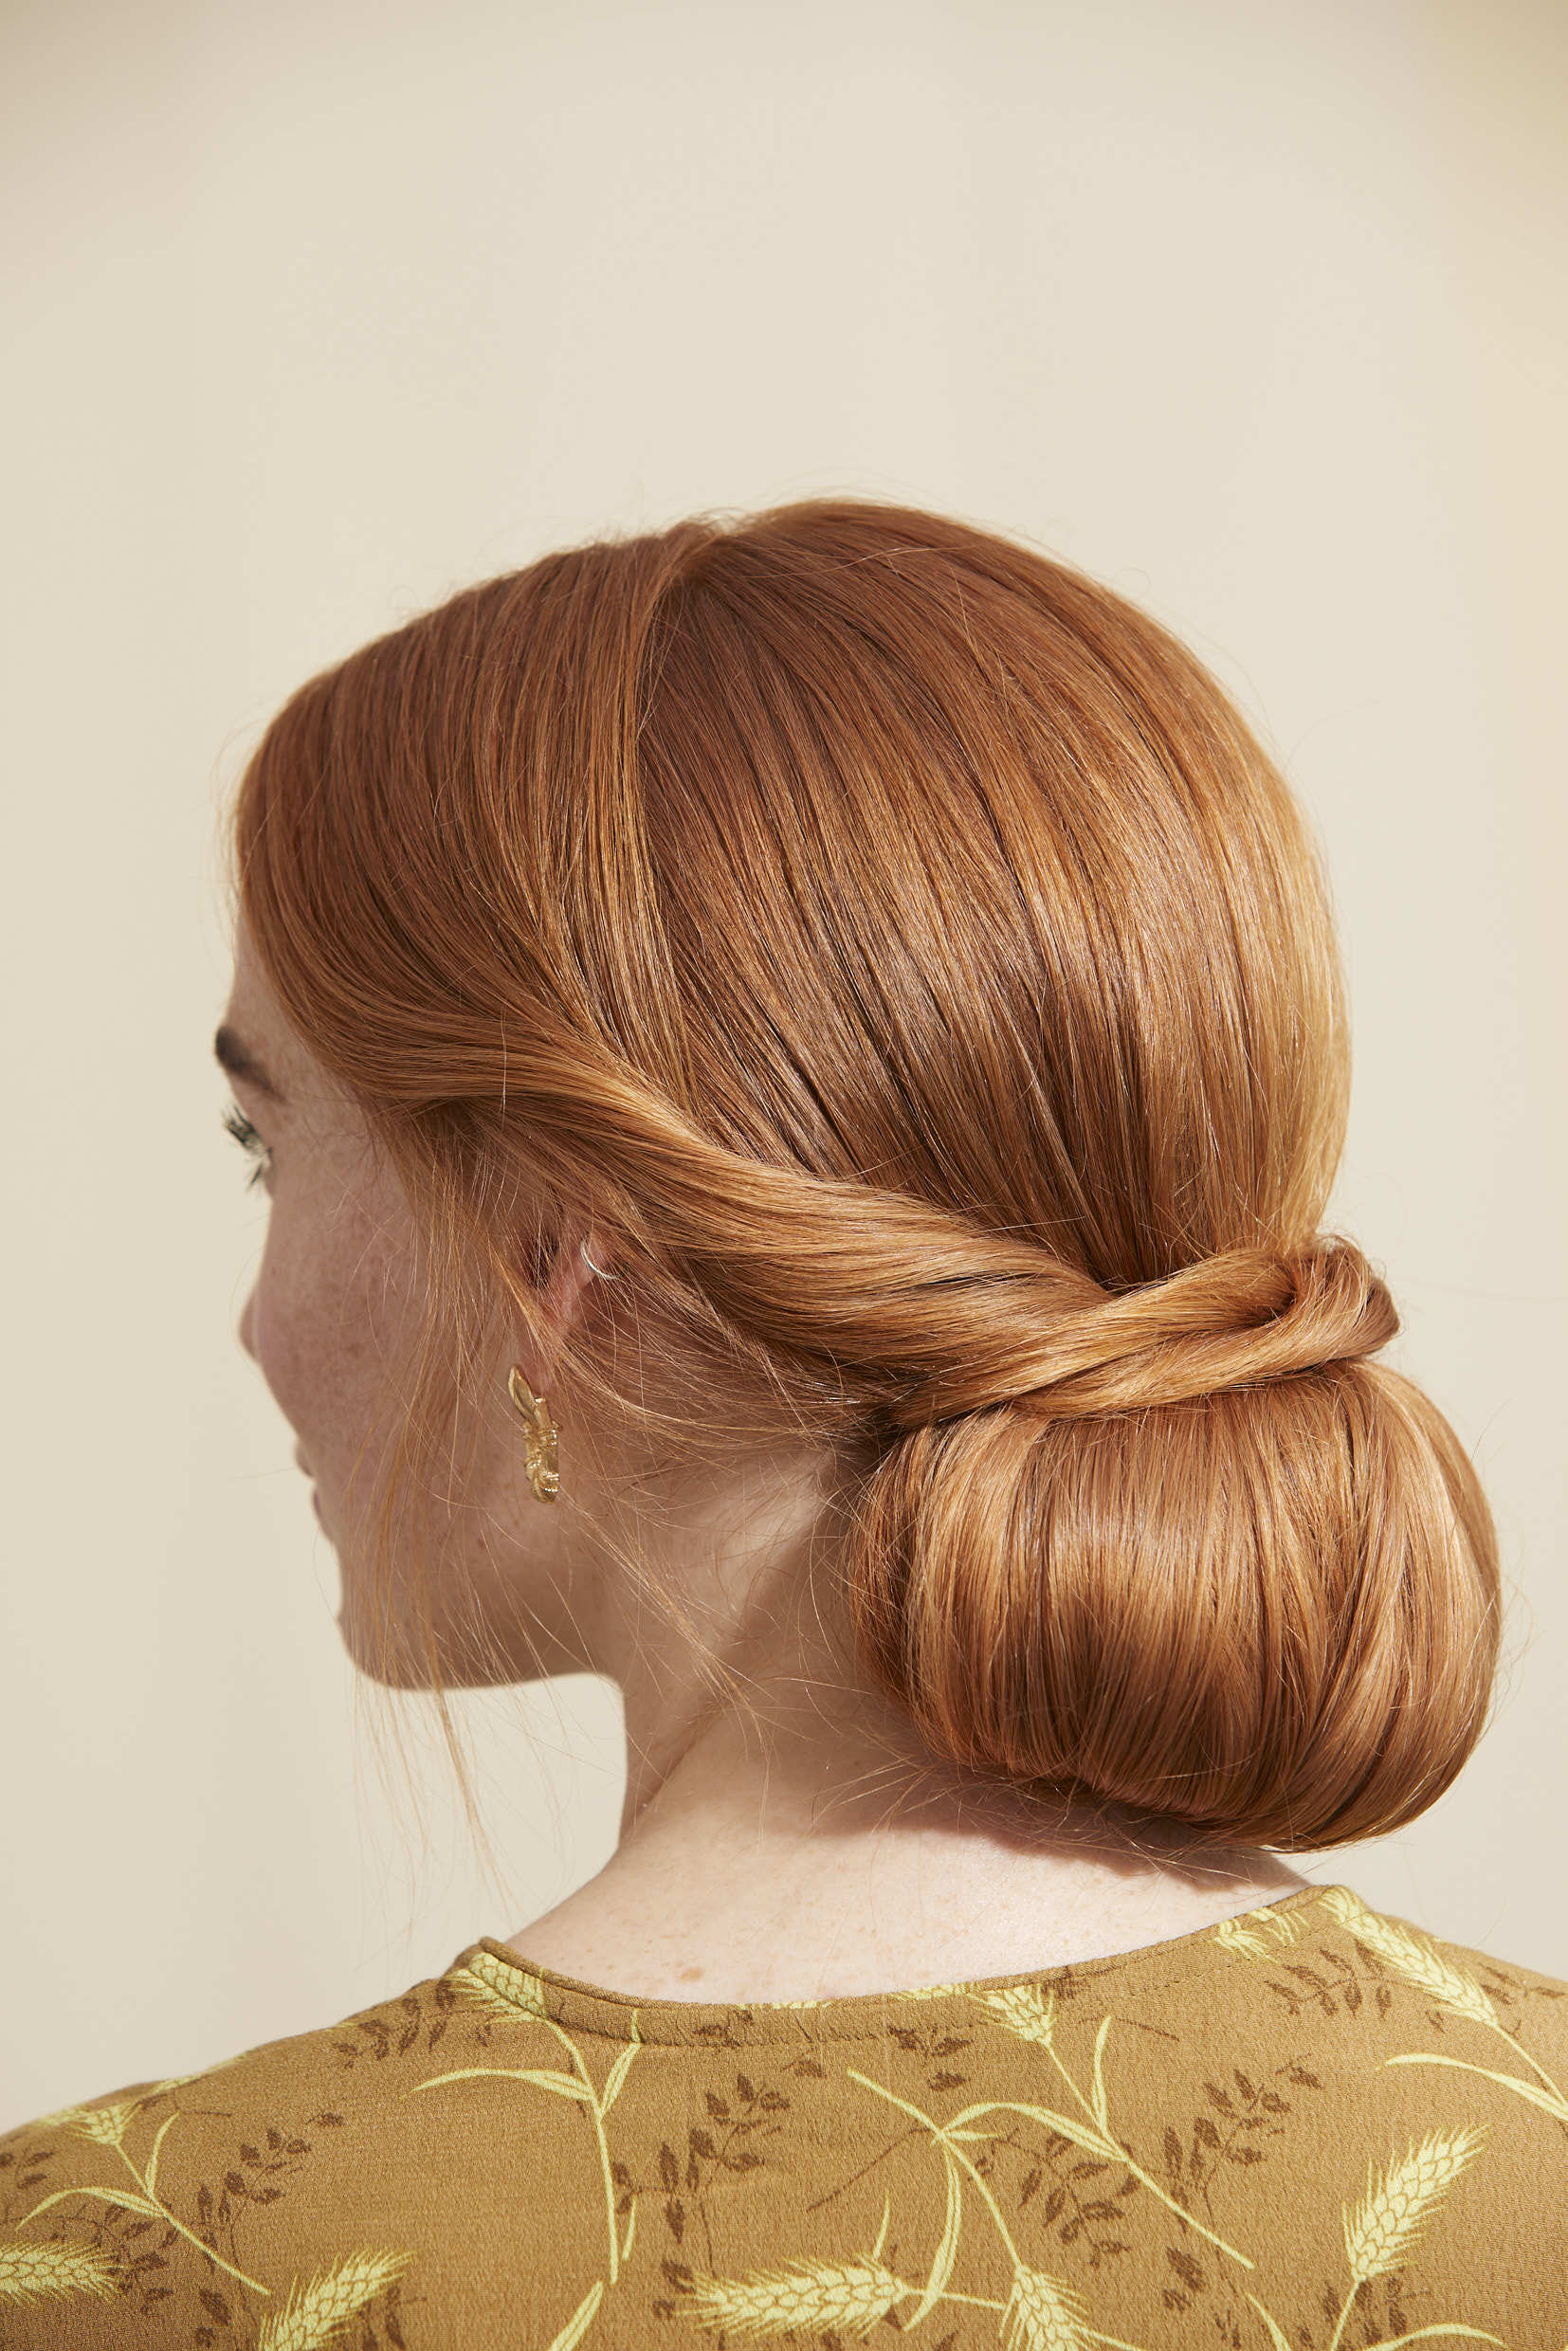 Redhead woman with a chignon hairstyle